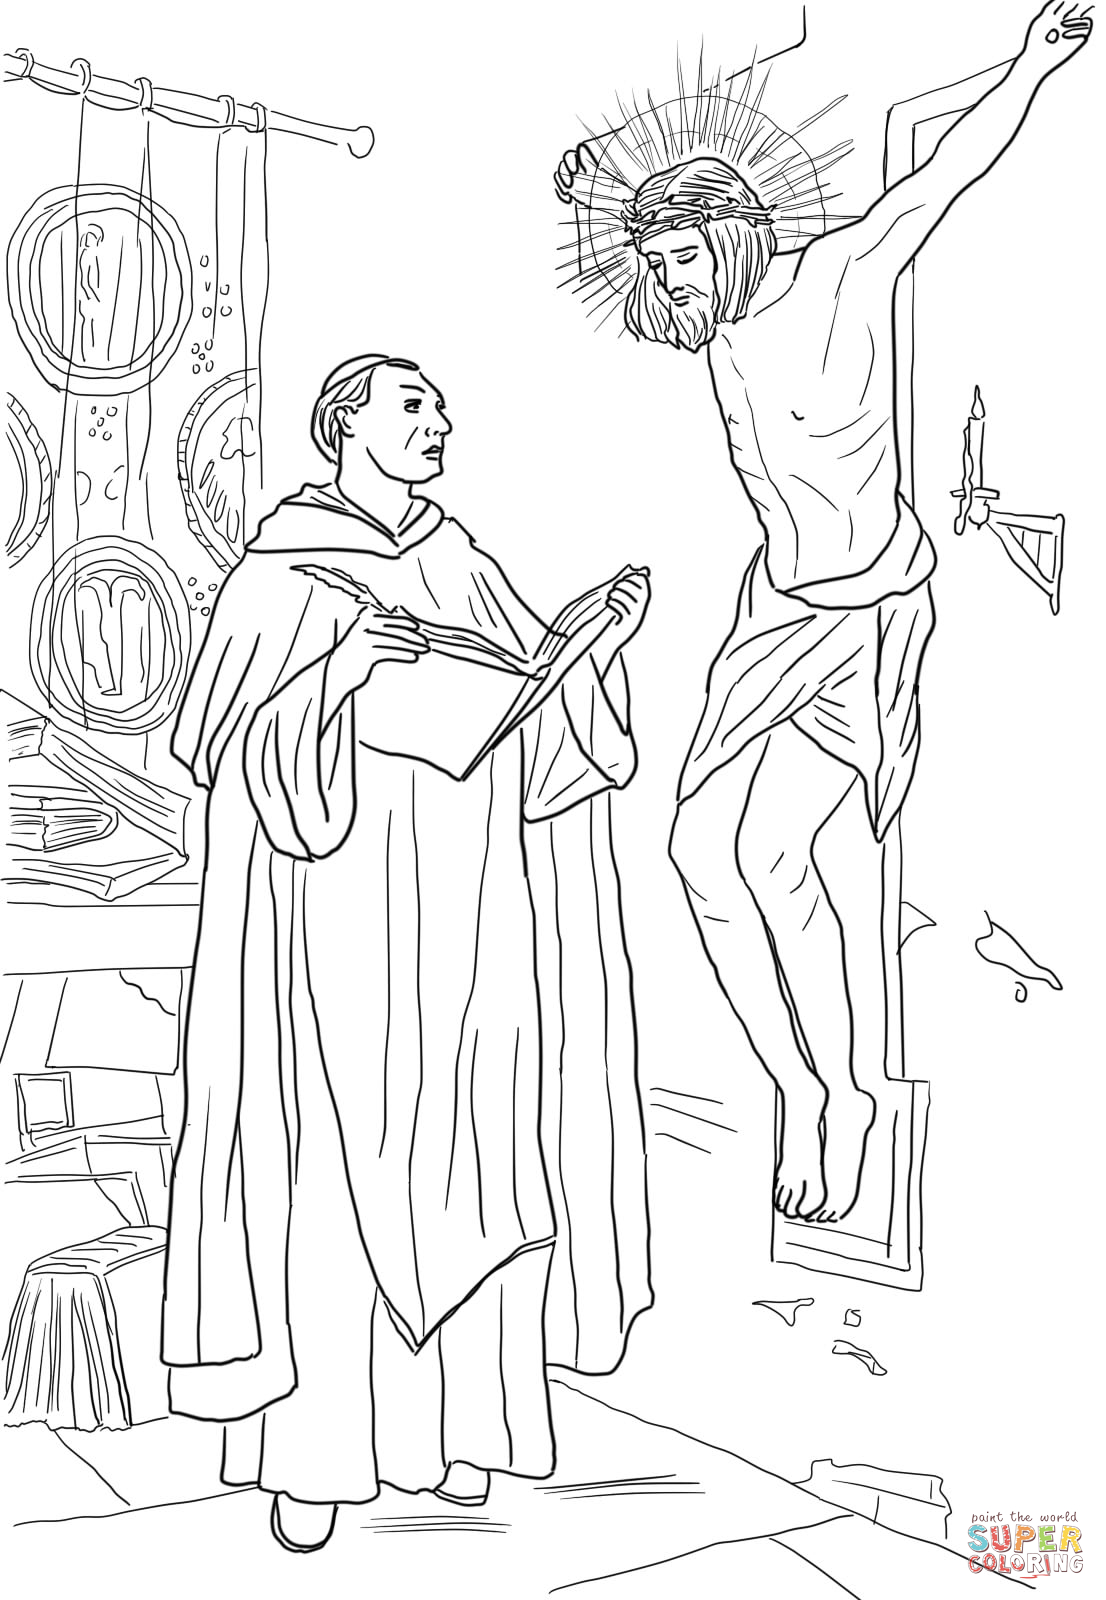 Crucifixion - Bible Coloring Pages